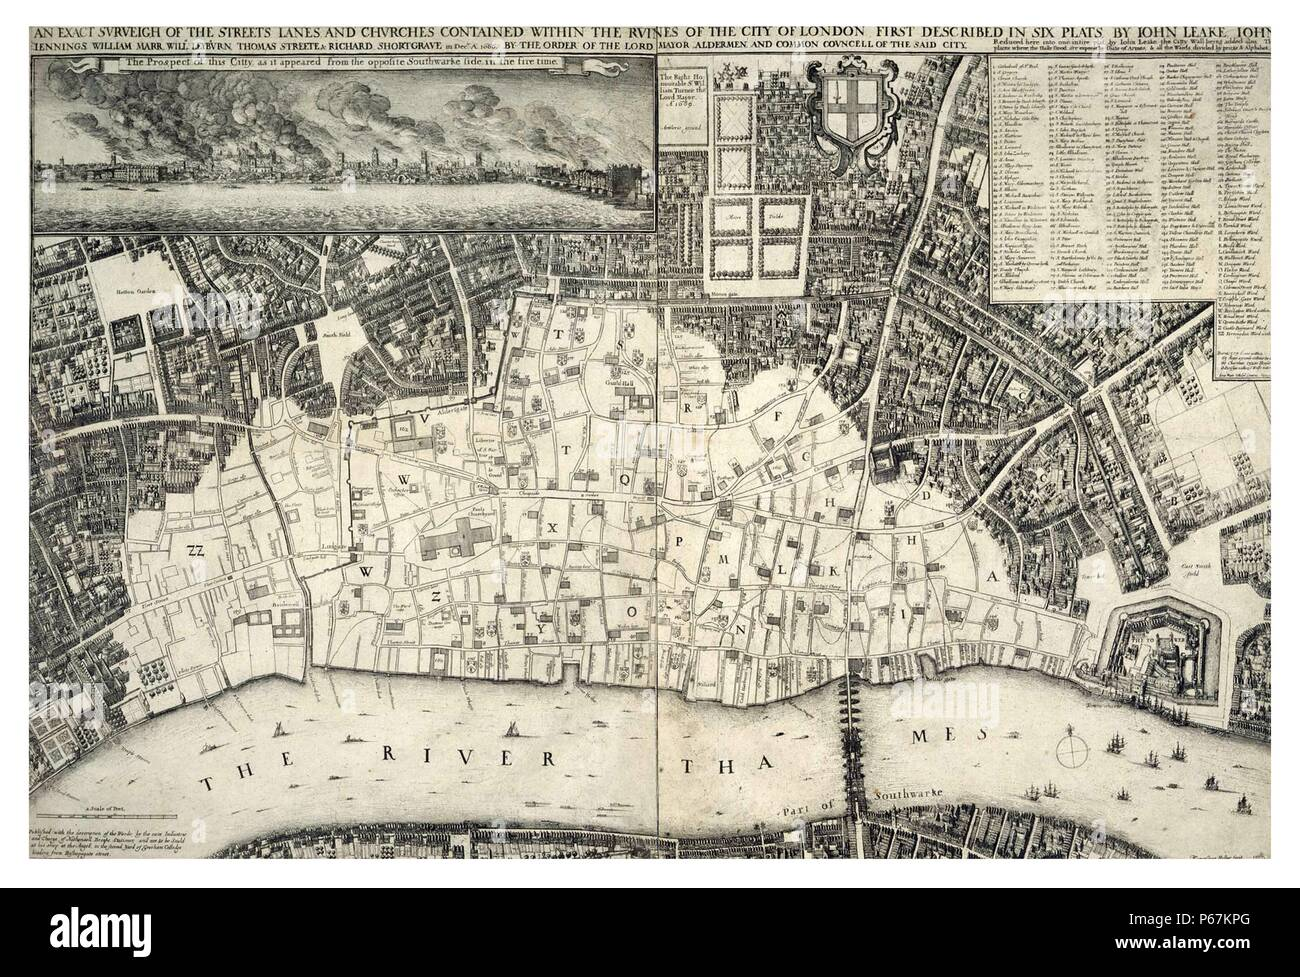 17th century map of London including the River Thames. At the top of the Map there is an illustration of the Great Fire of London. Dated 1677 Stock Photo